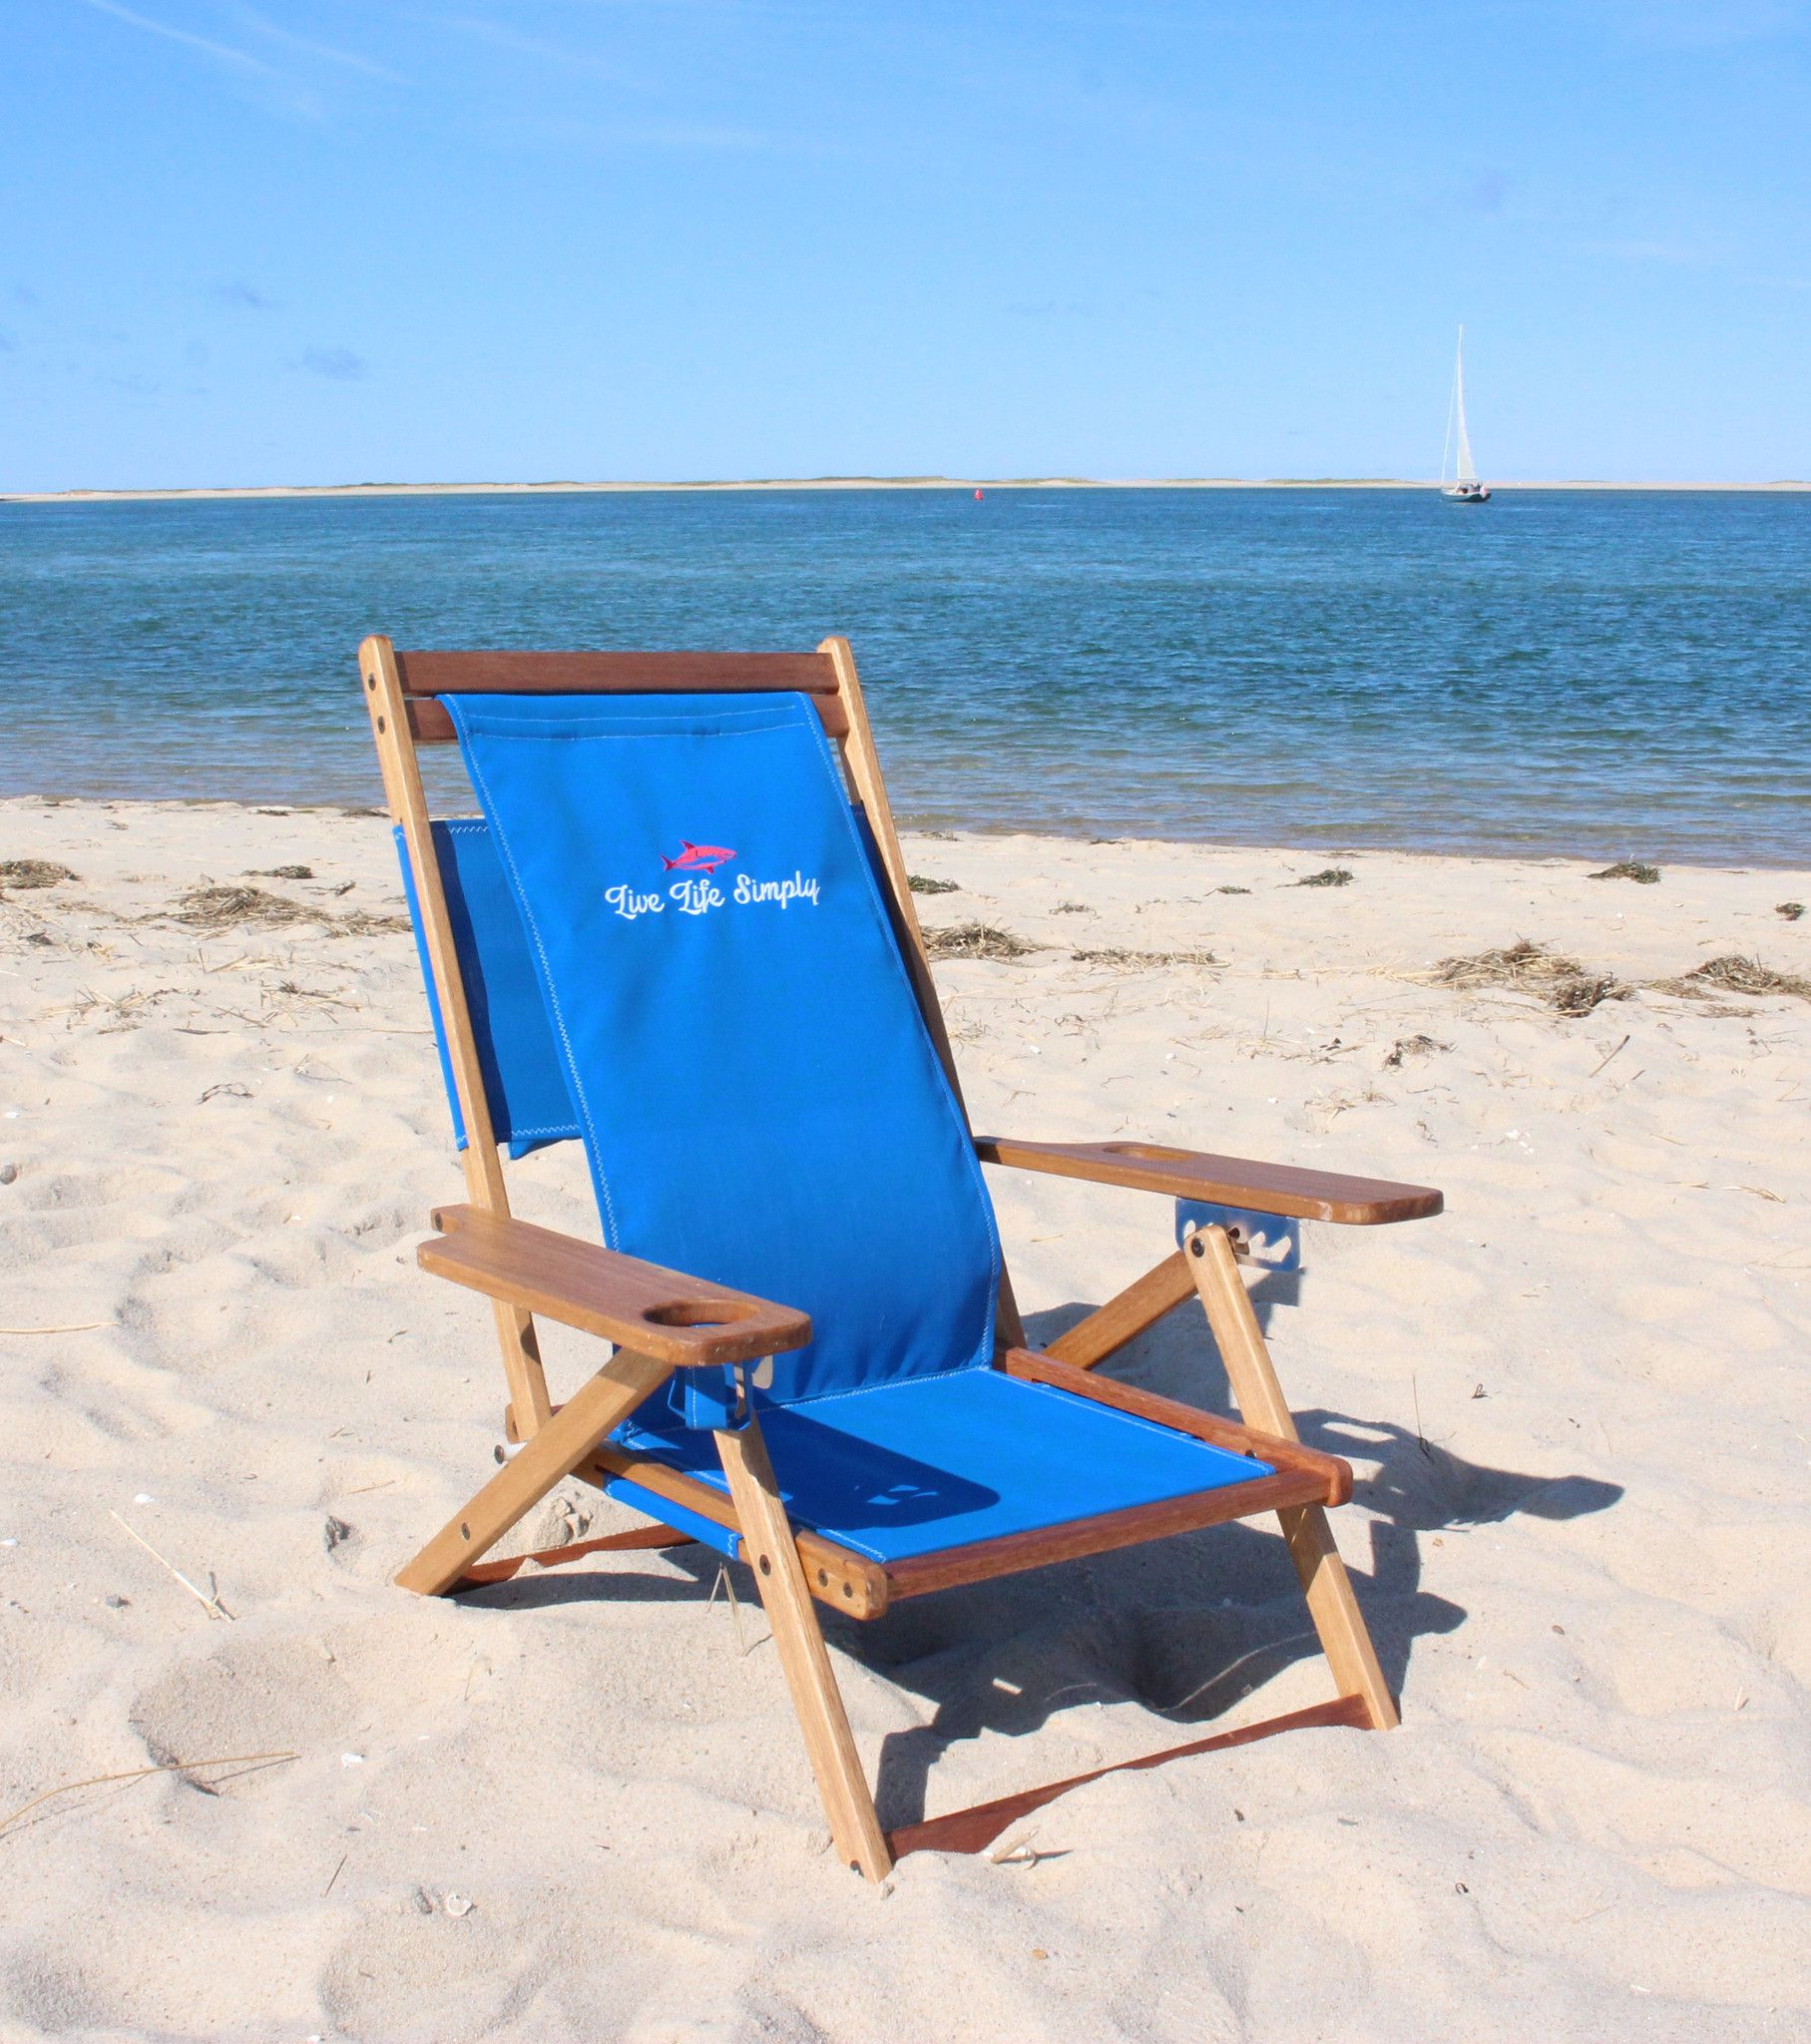 beach ostrich chair products image